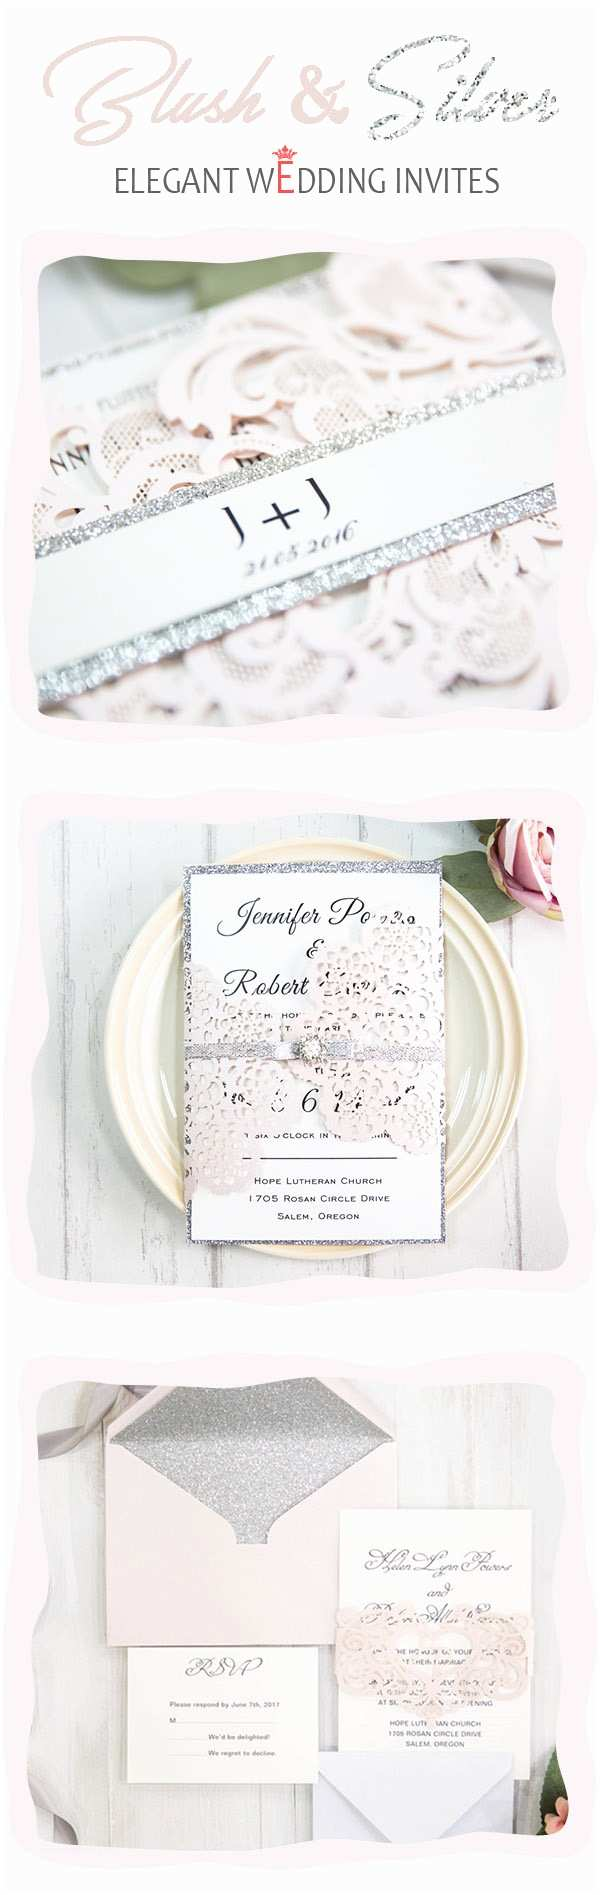 Elegant Silver Wedding Invitations Stunning Pink Wedding Ideas and Invitations with Gold